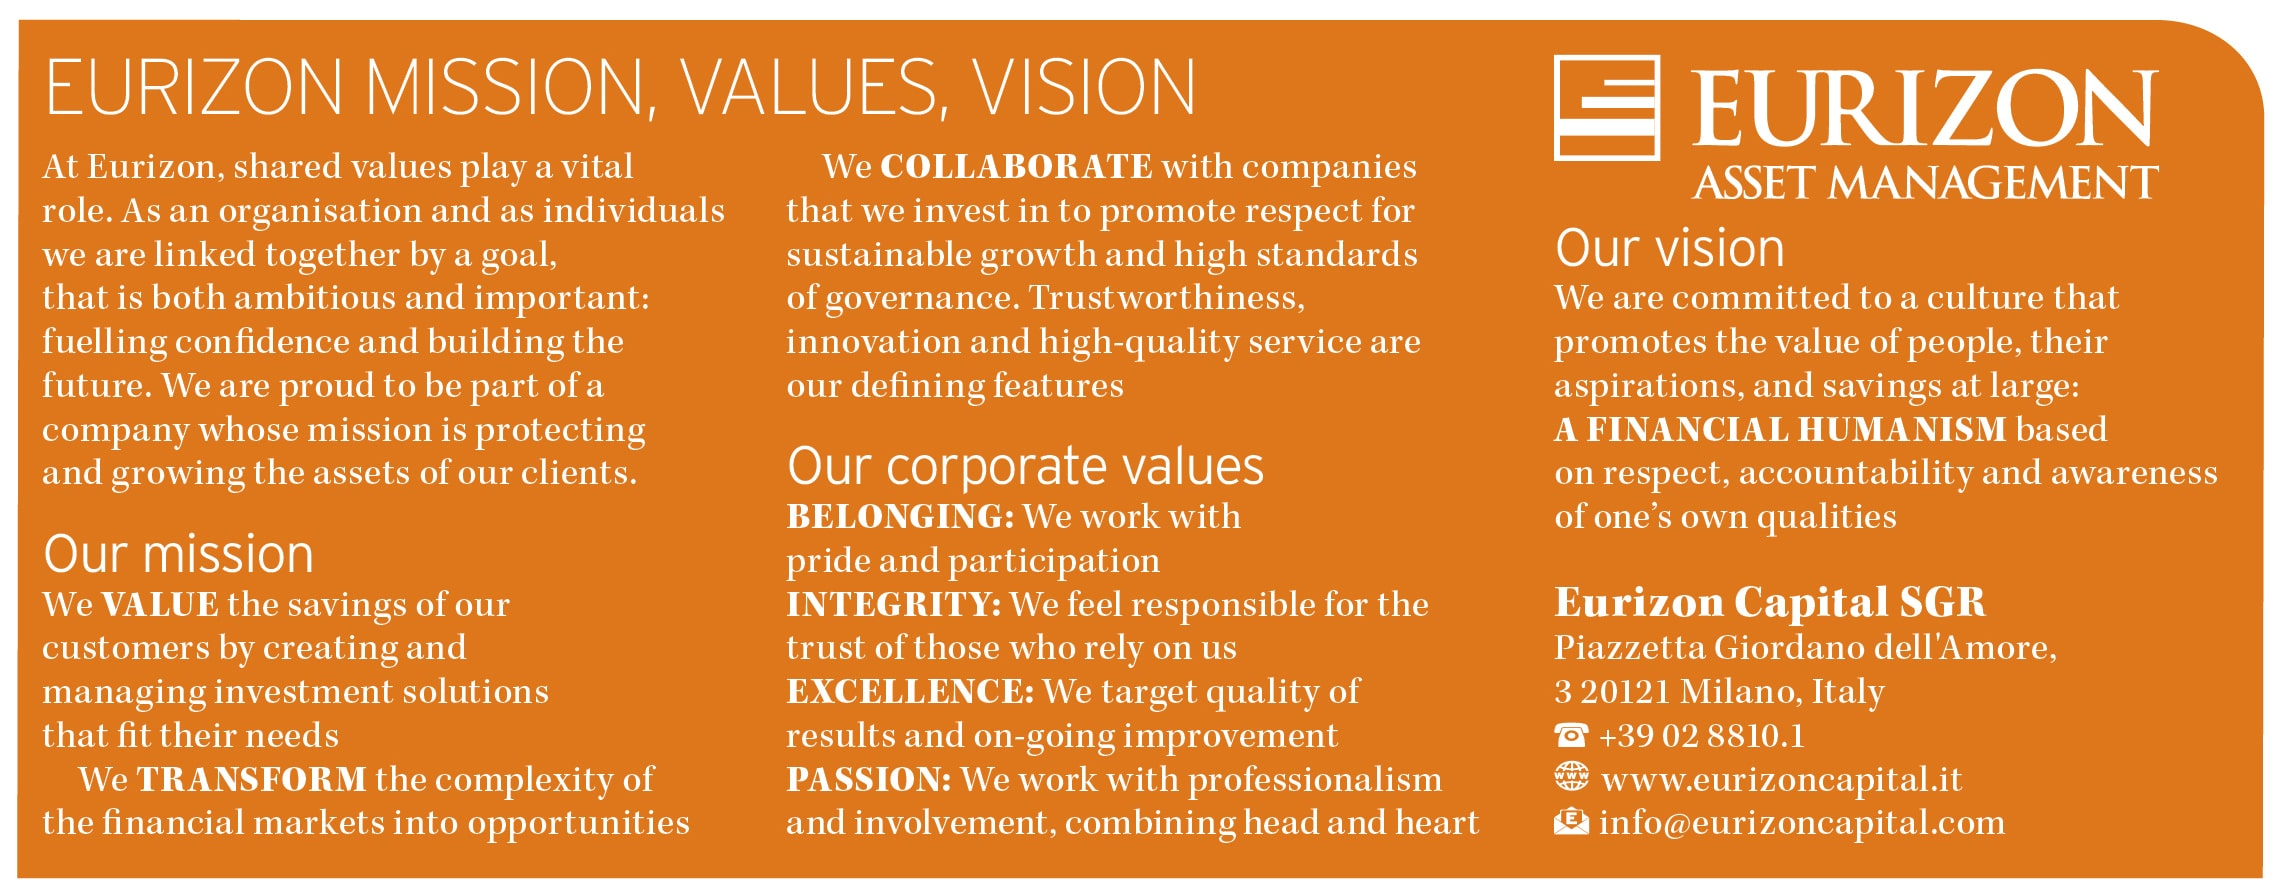 Stewardship and Responsible Investment Ethical Boardroom